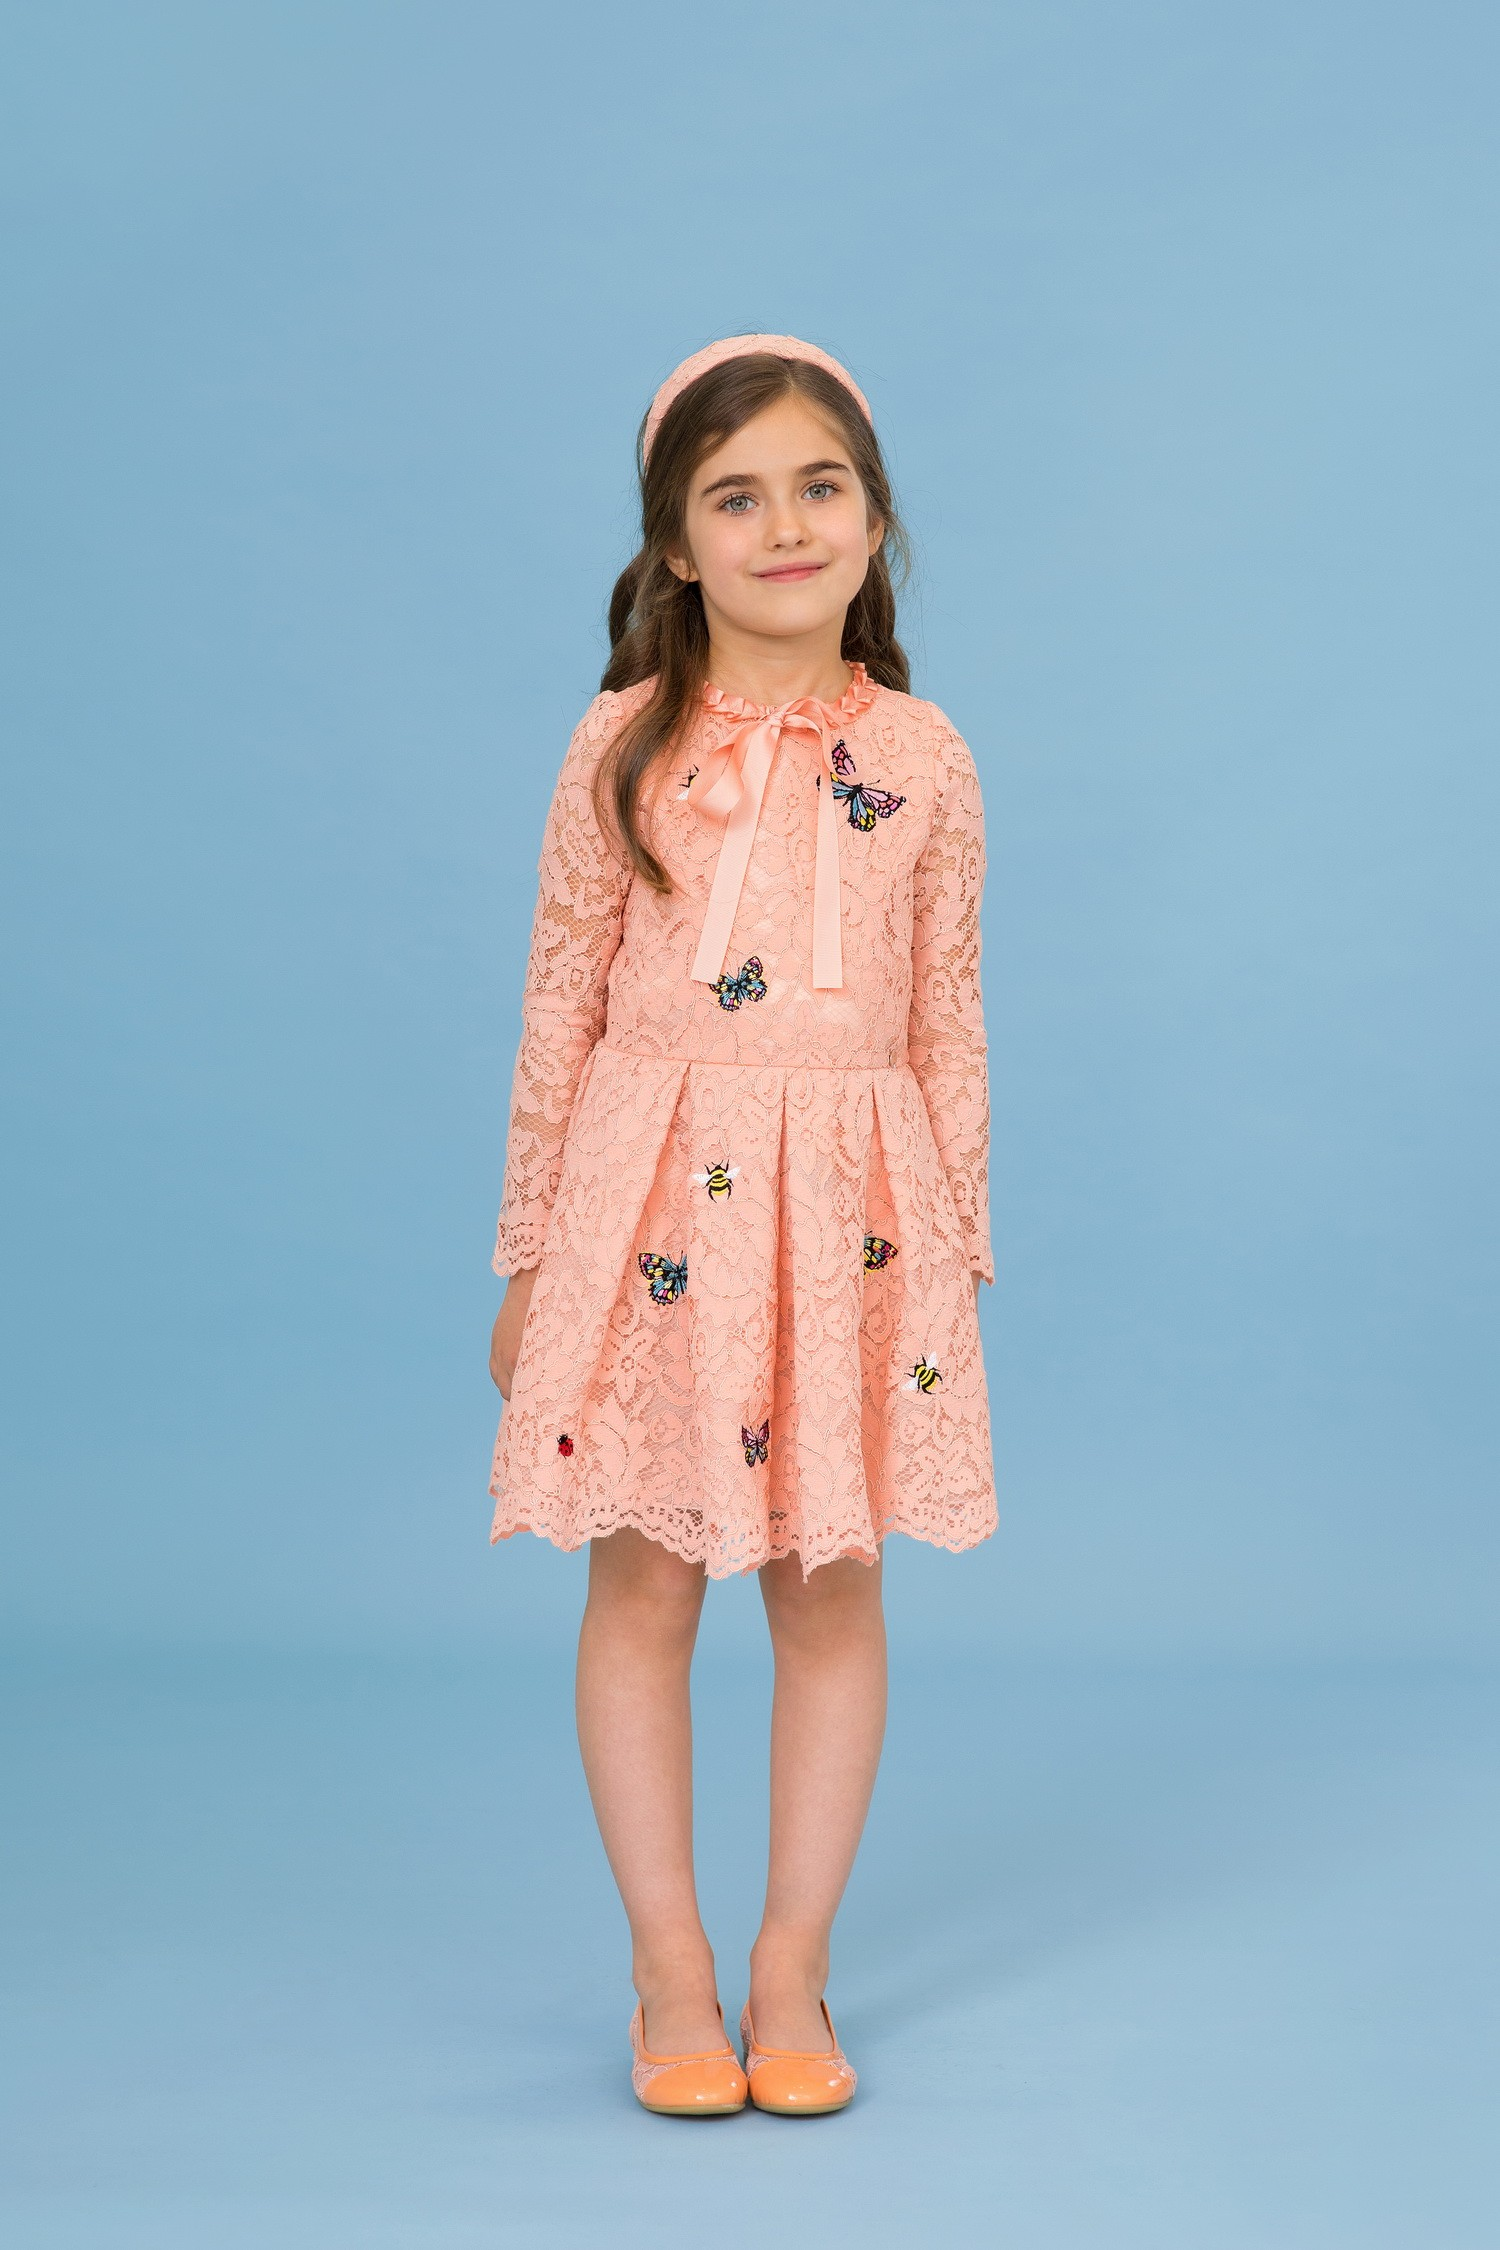 Powder lace dress with butterflies